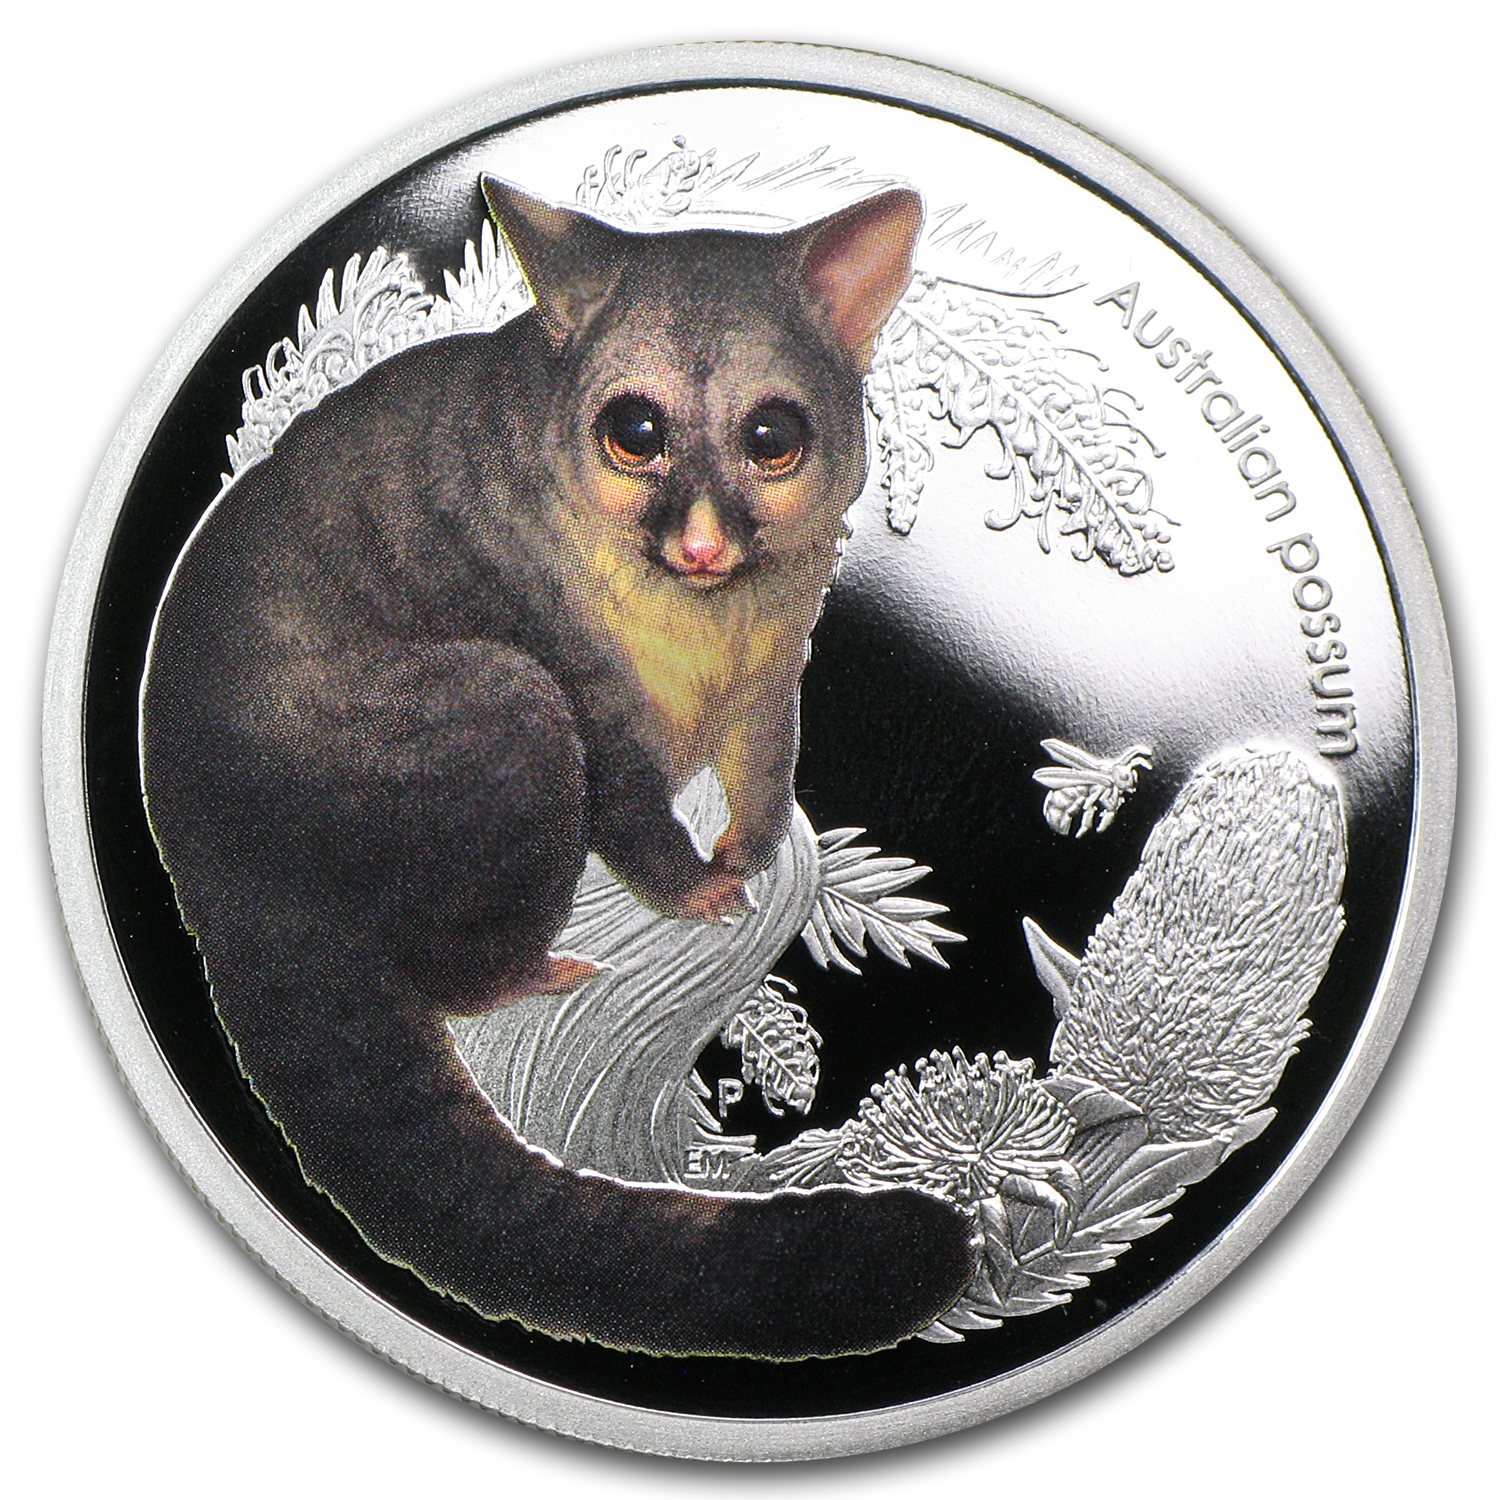 2013 Australia 1/2 oz Silver Bush Babies II Possum Proof